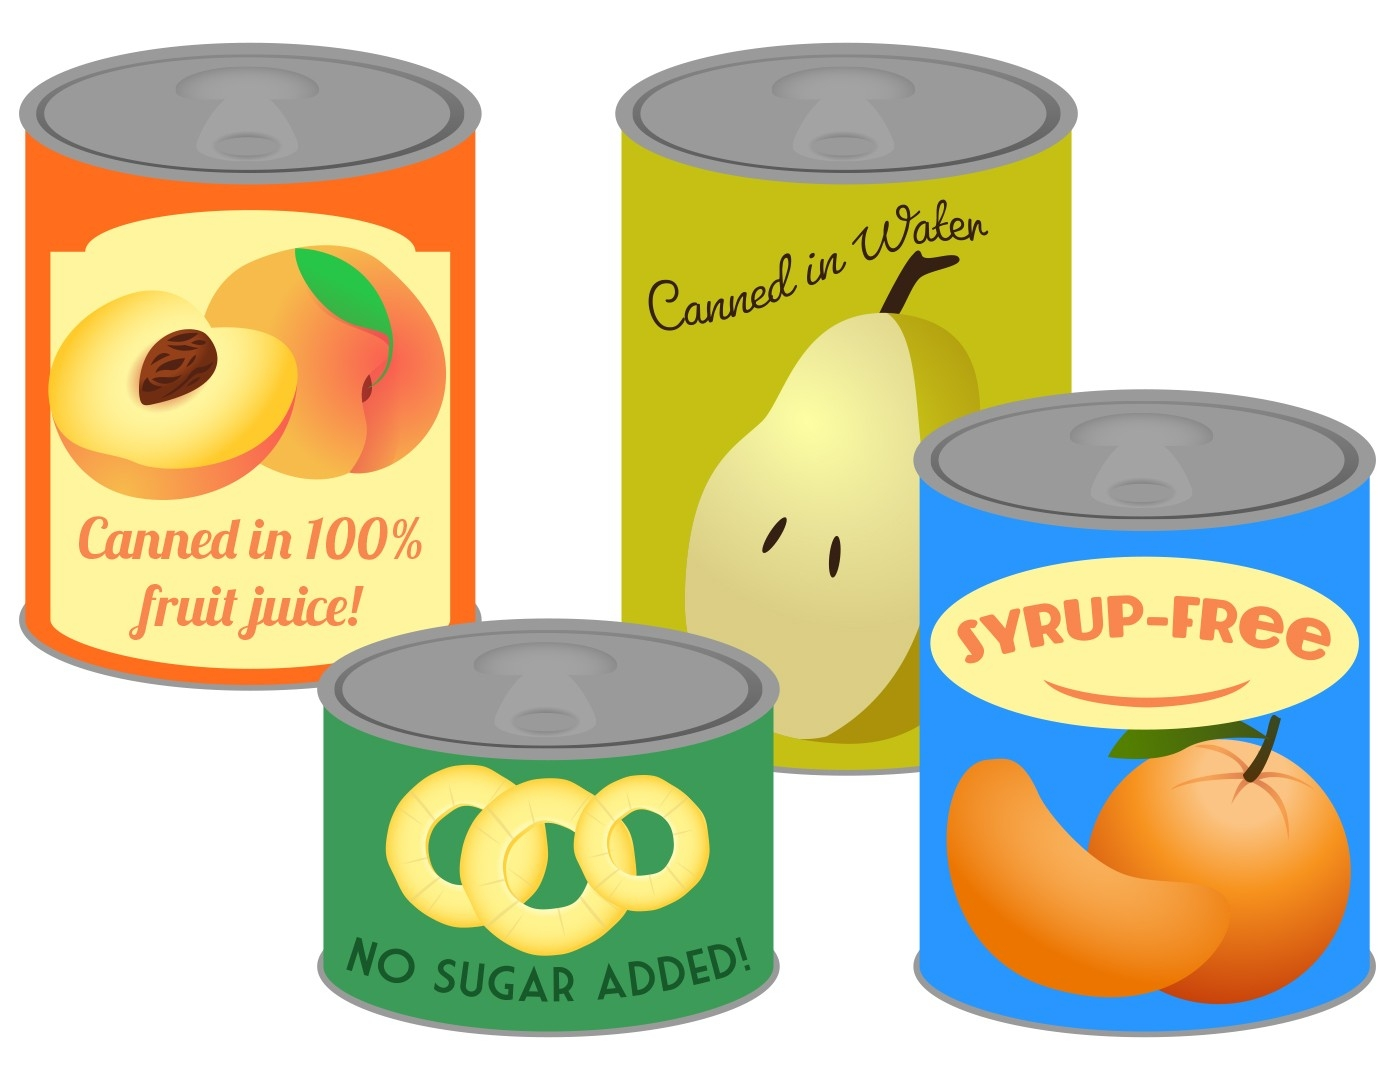 How to correctly understand the canned foods